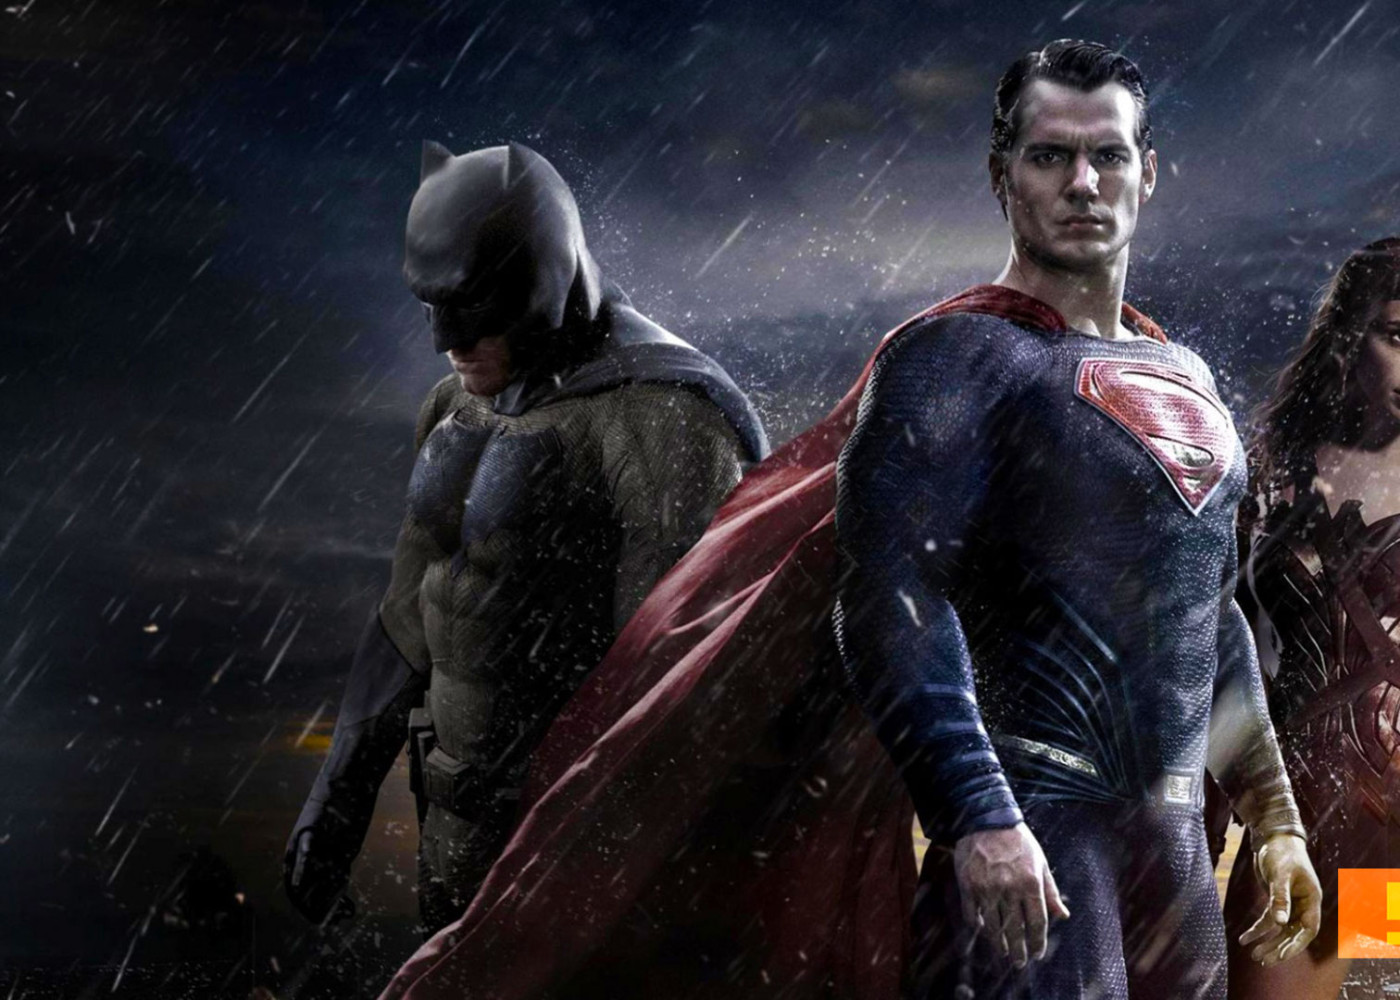 Batman v superman: dawn of justice. the action pixel. dc comics. warner bros. @theactionpixel